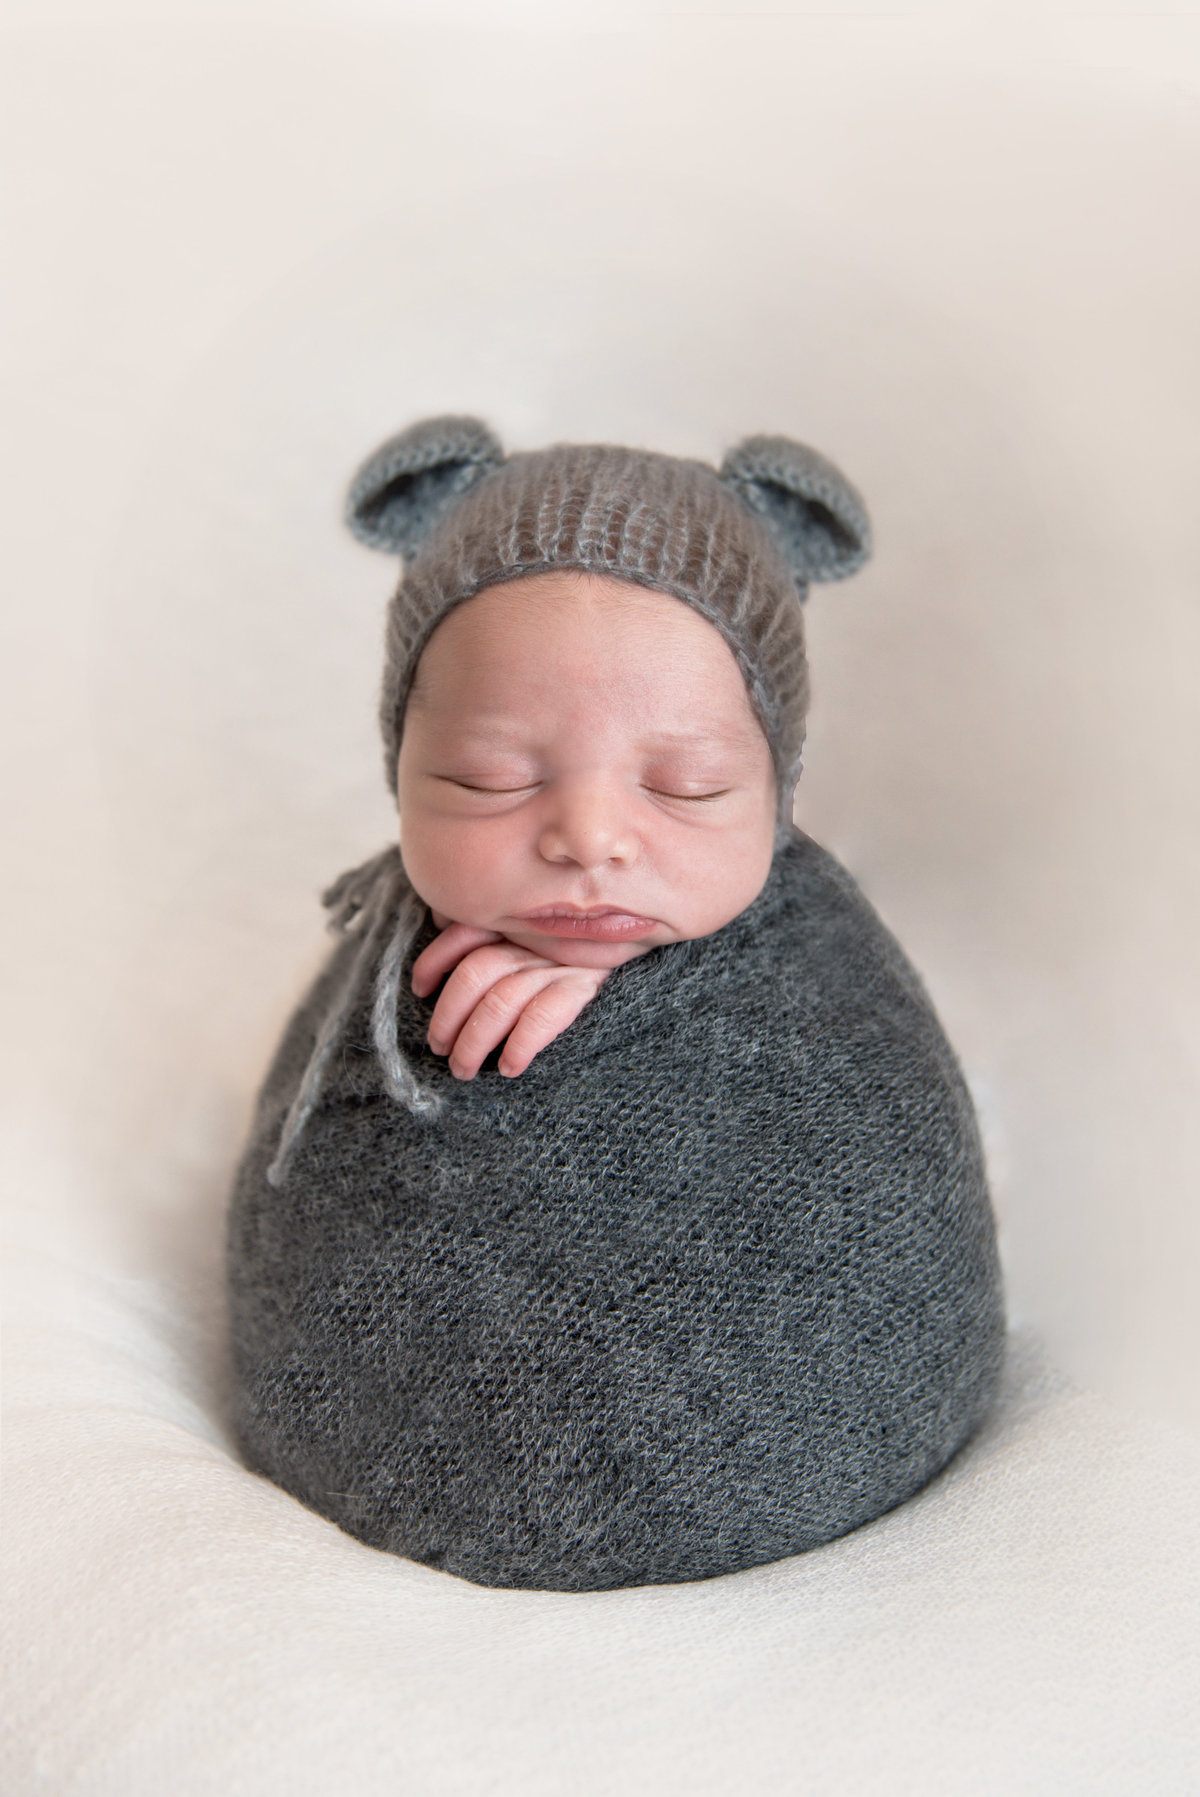 noah-newborn-mini-session-central-nj-portrait-studio-imagery-by-marianne-2019-8